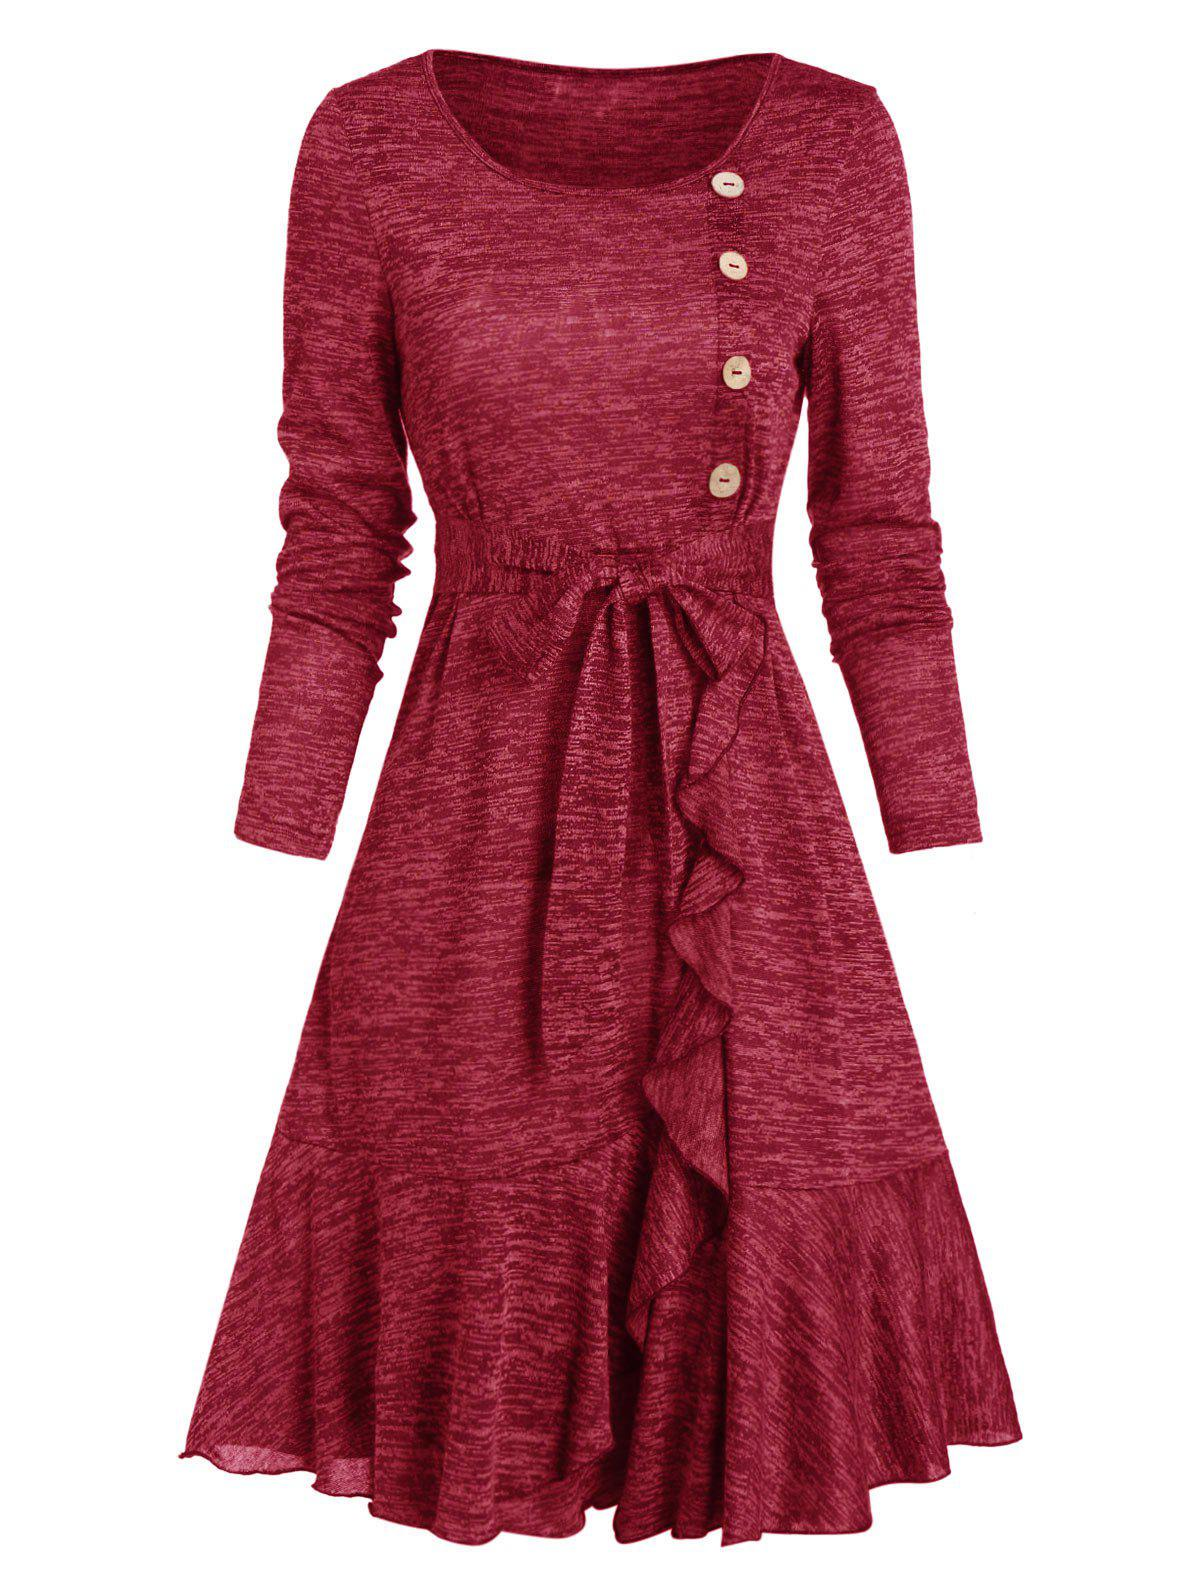 Button Ruffled Heather Knit A Line Dress - RED WINE 3XL